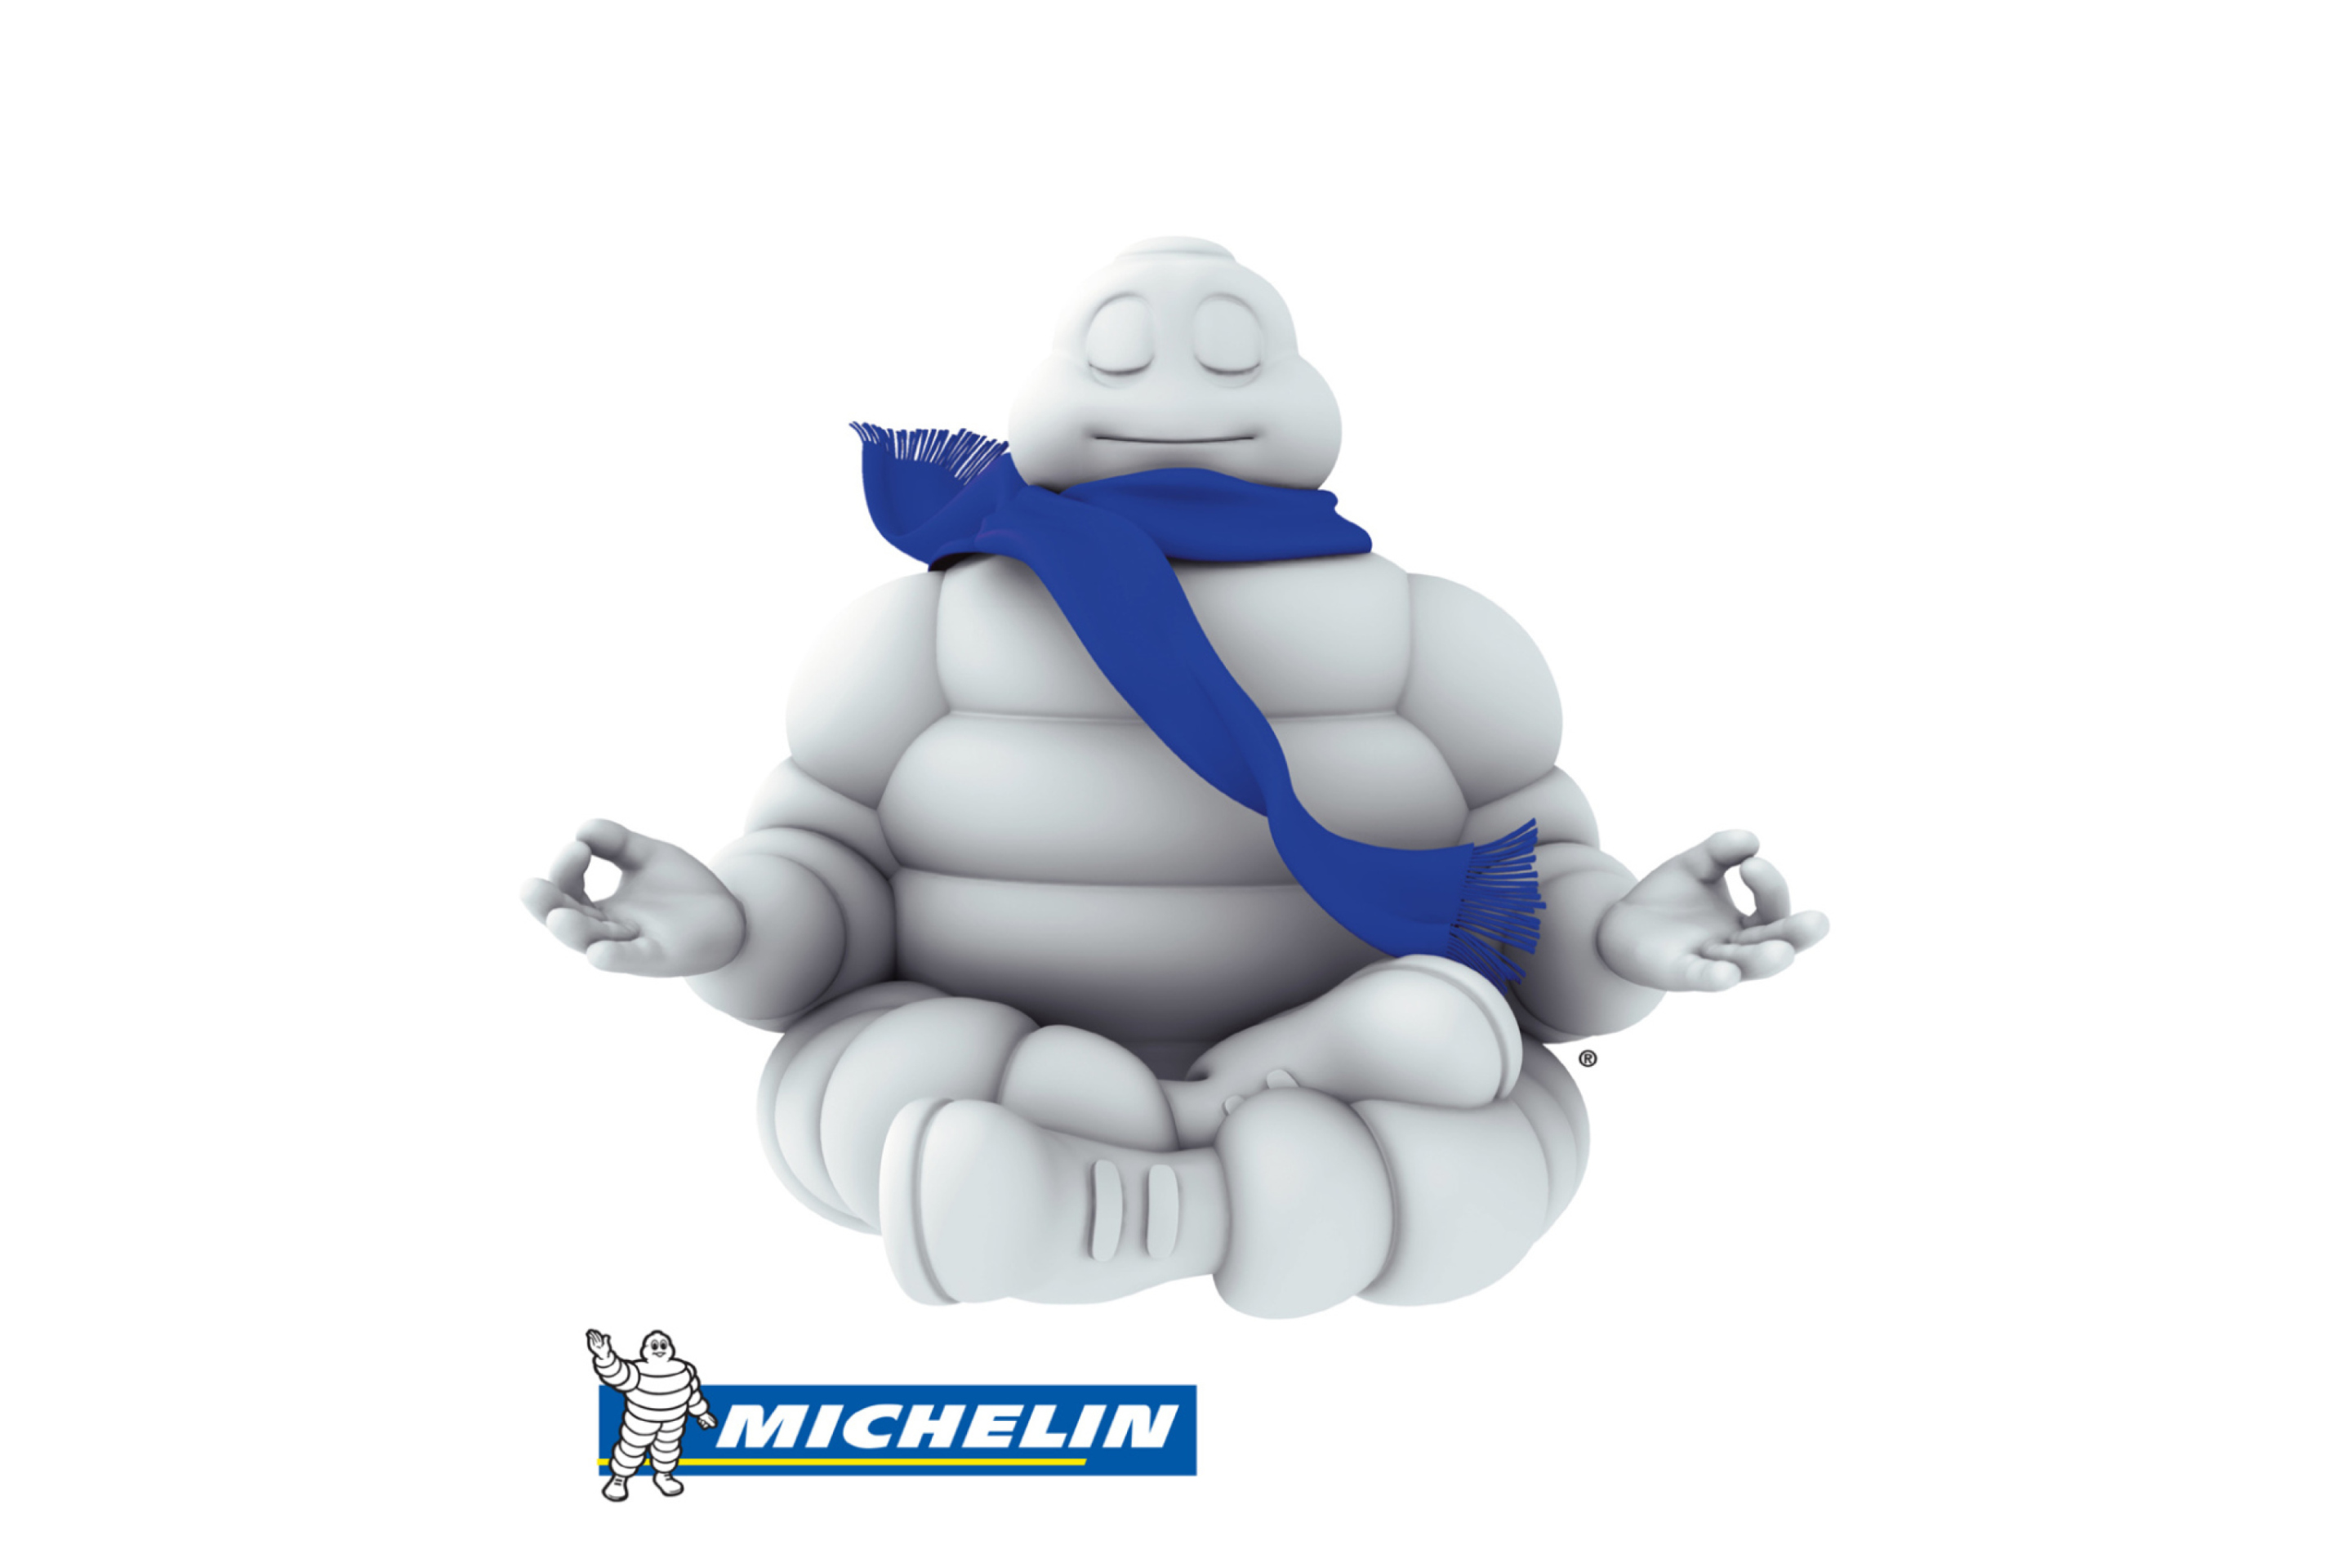 Michelin wallpaper 2880x1920